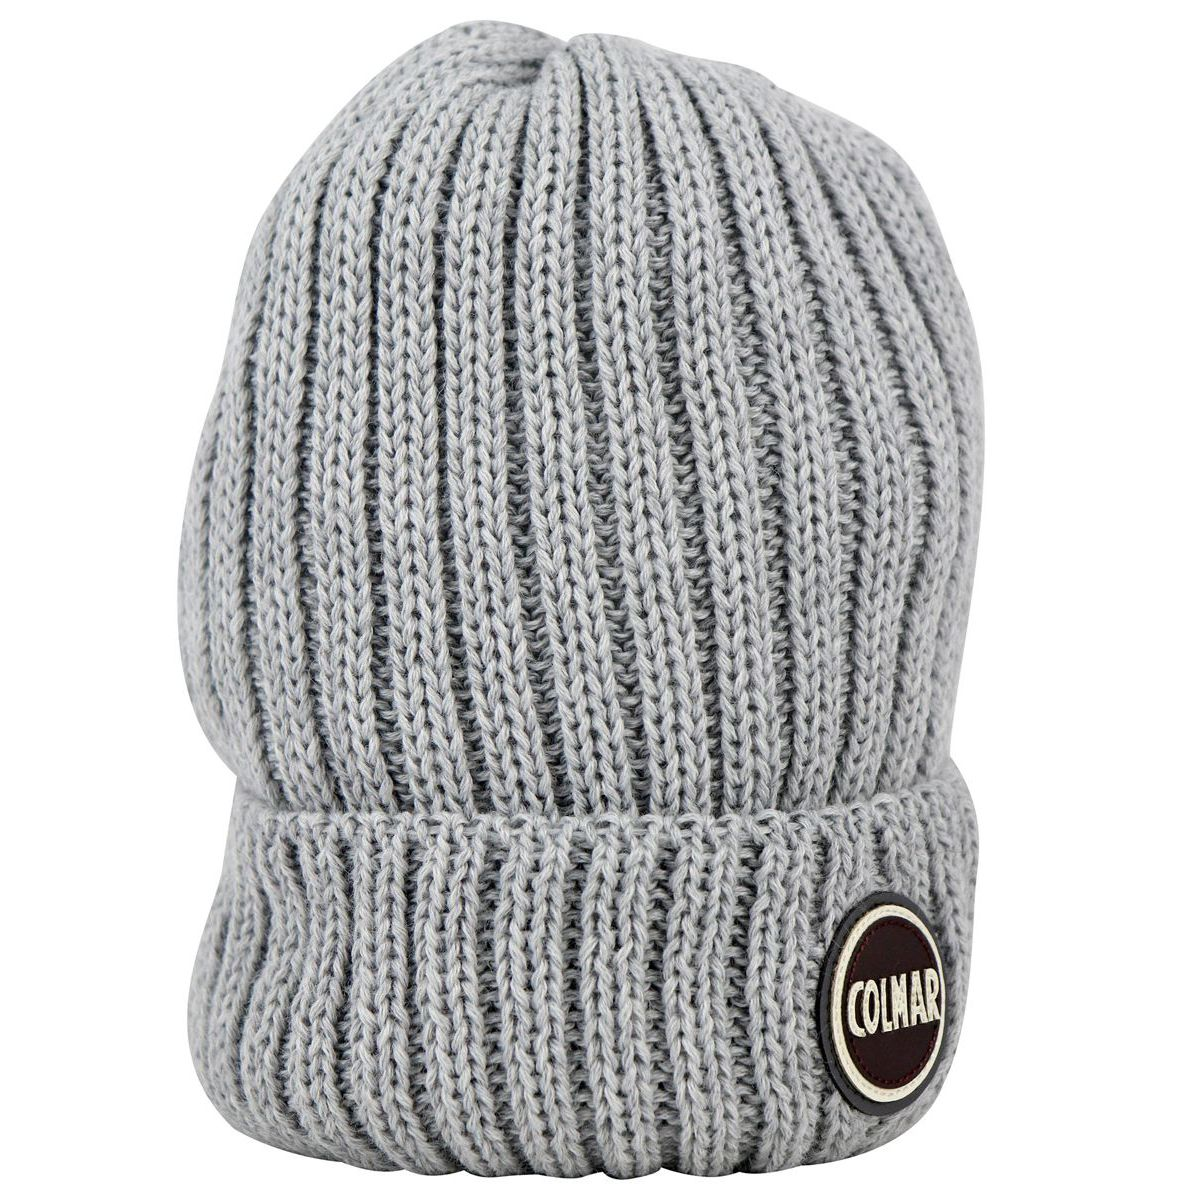 Ribbed wool blend hat with turn-up and logo Light grey Colmar